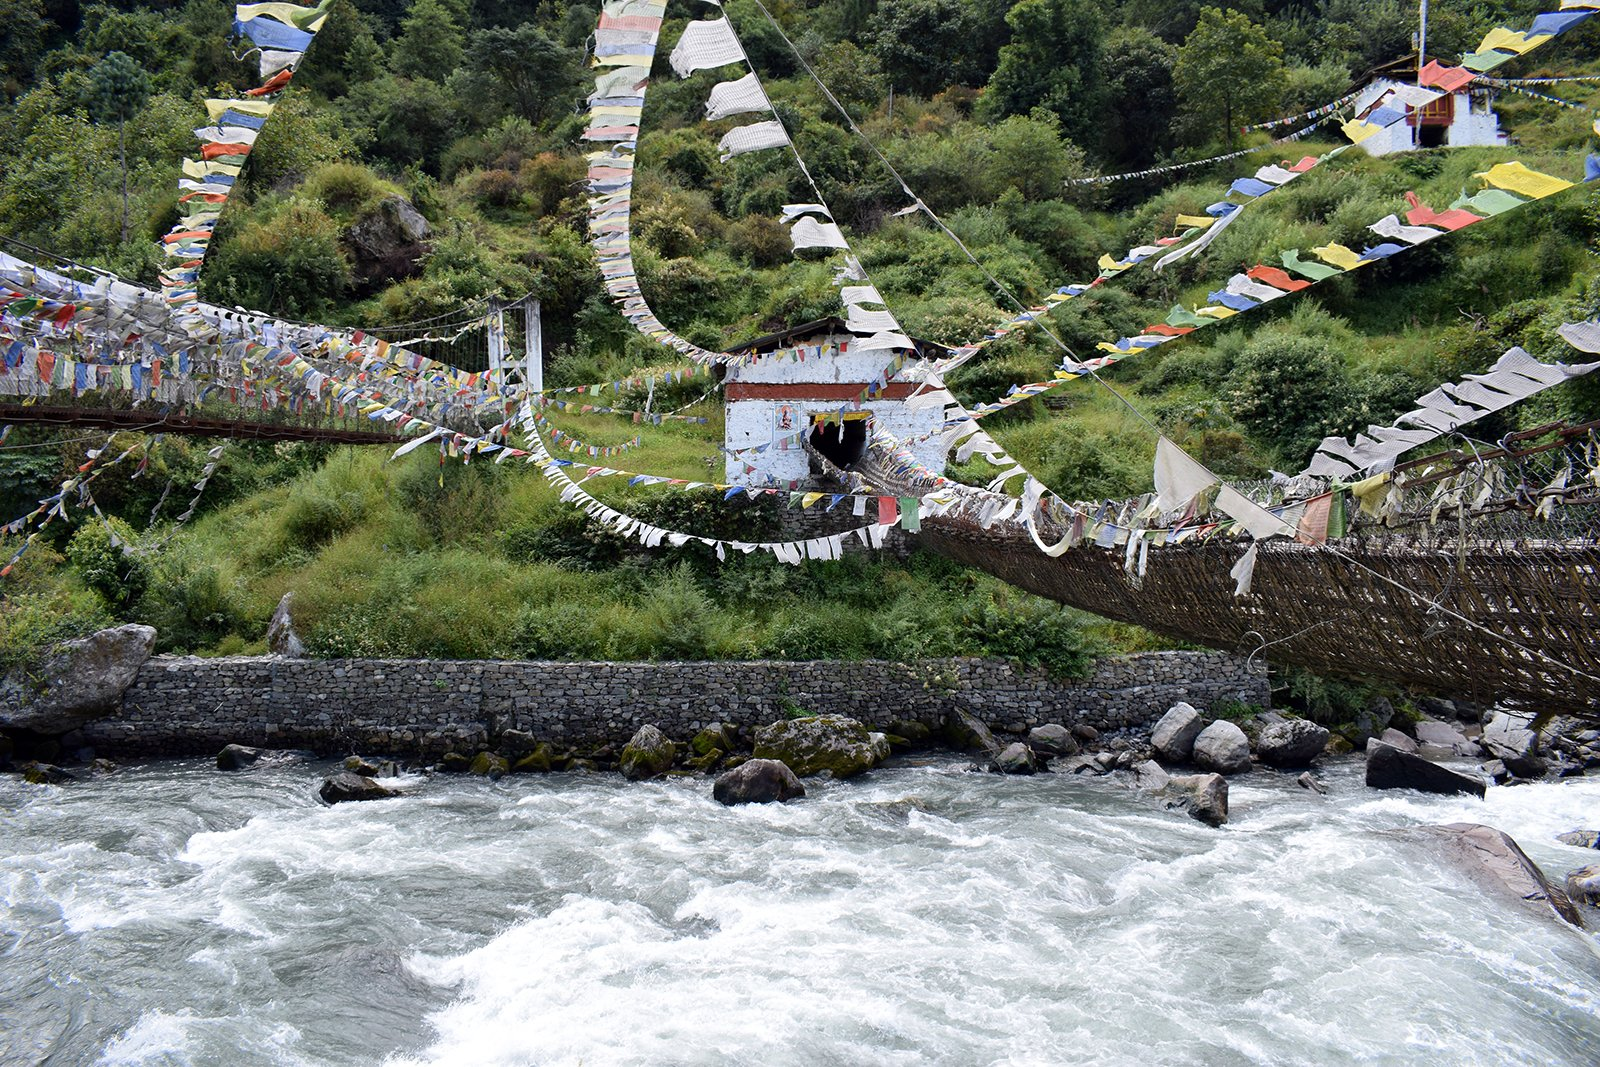 Prayer flags flap on and around the 600-year-old Chagzam Bridge, right, which was built by a disciple of the First Dalai Lama. The famous bridge spans the Tawang River in Arunachal Pradesh, India. RNS photo by Priyadarshini Sen